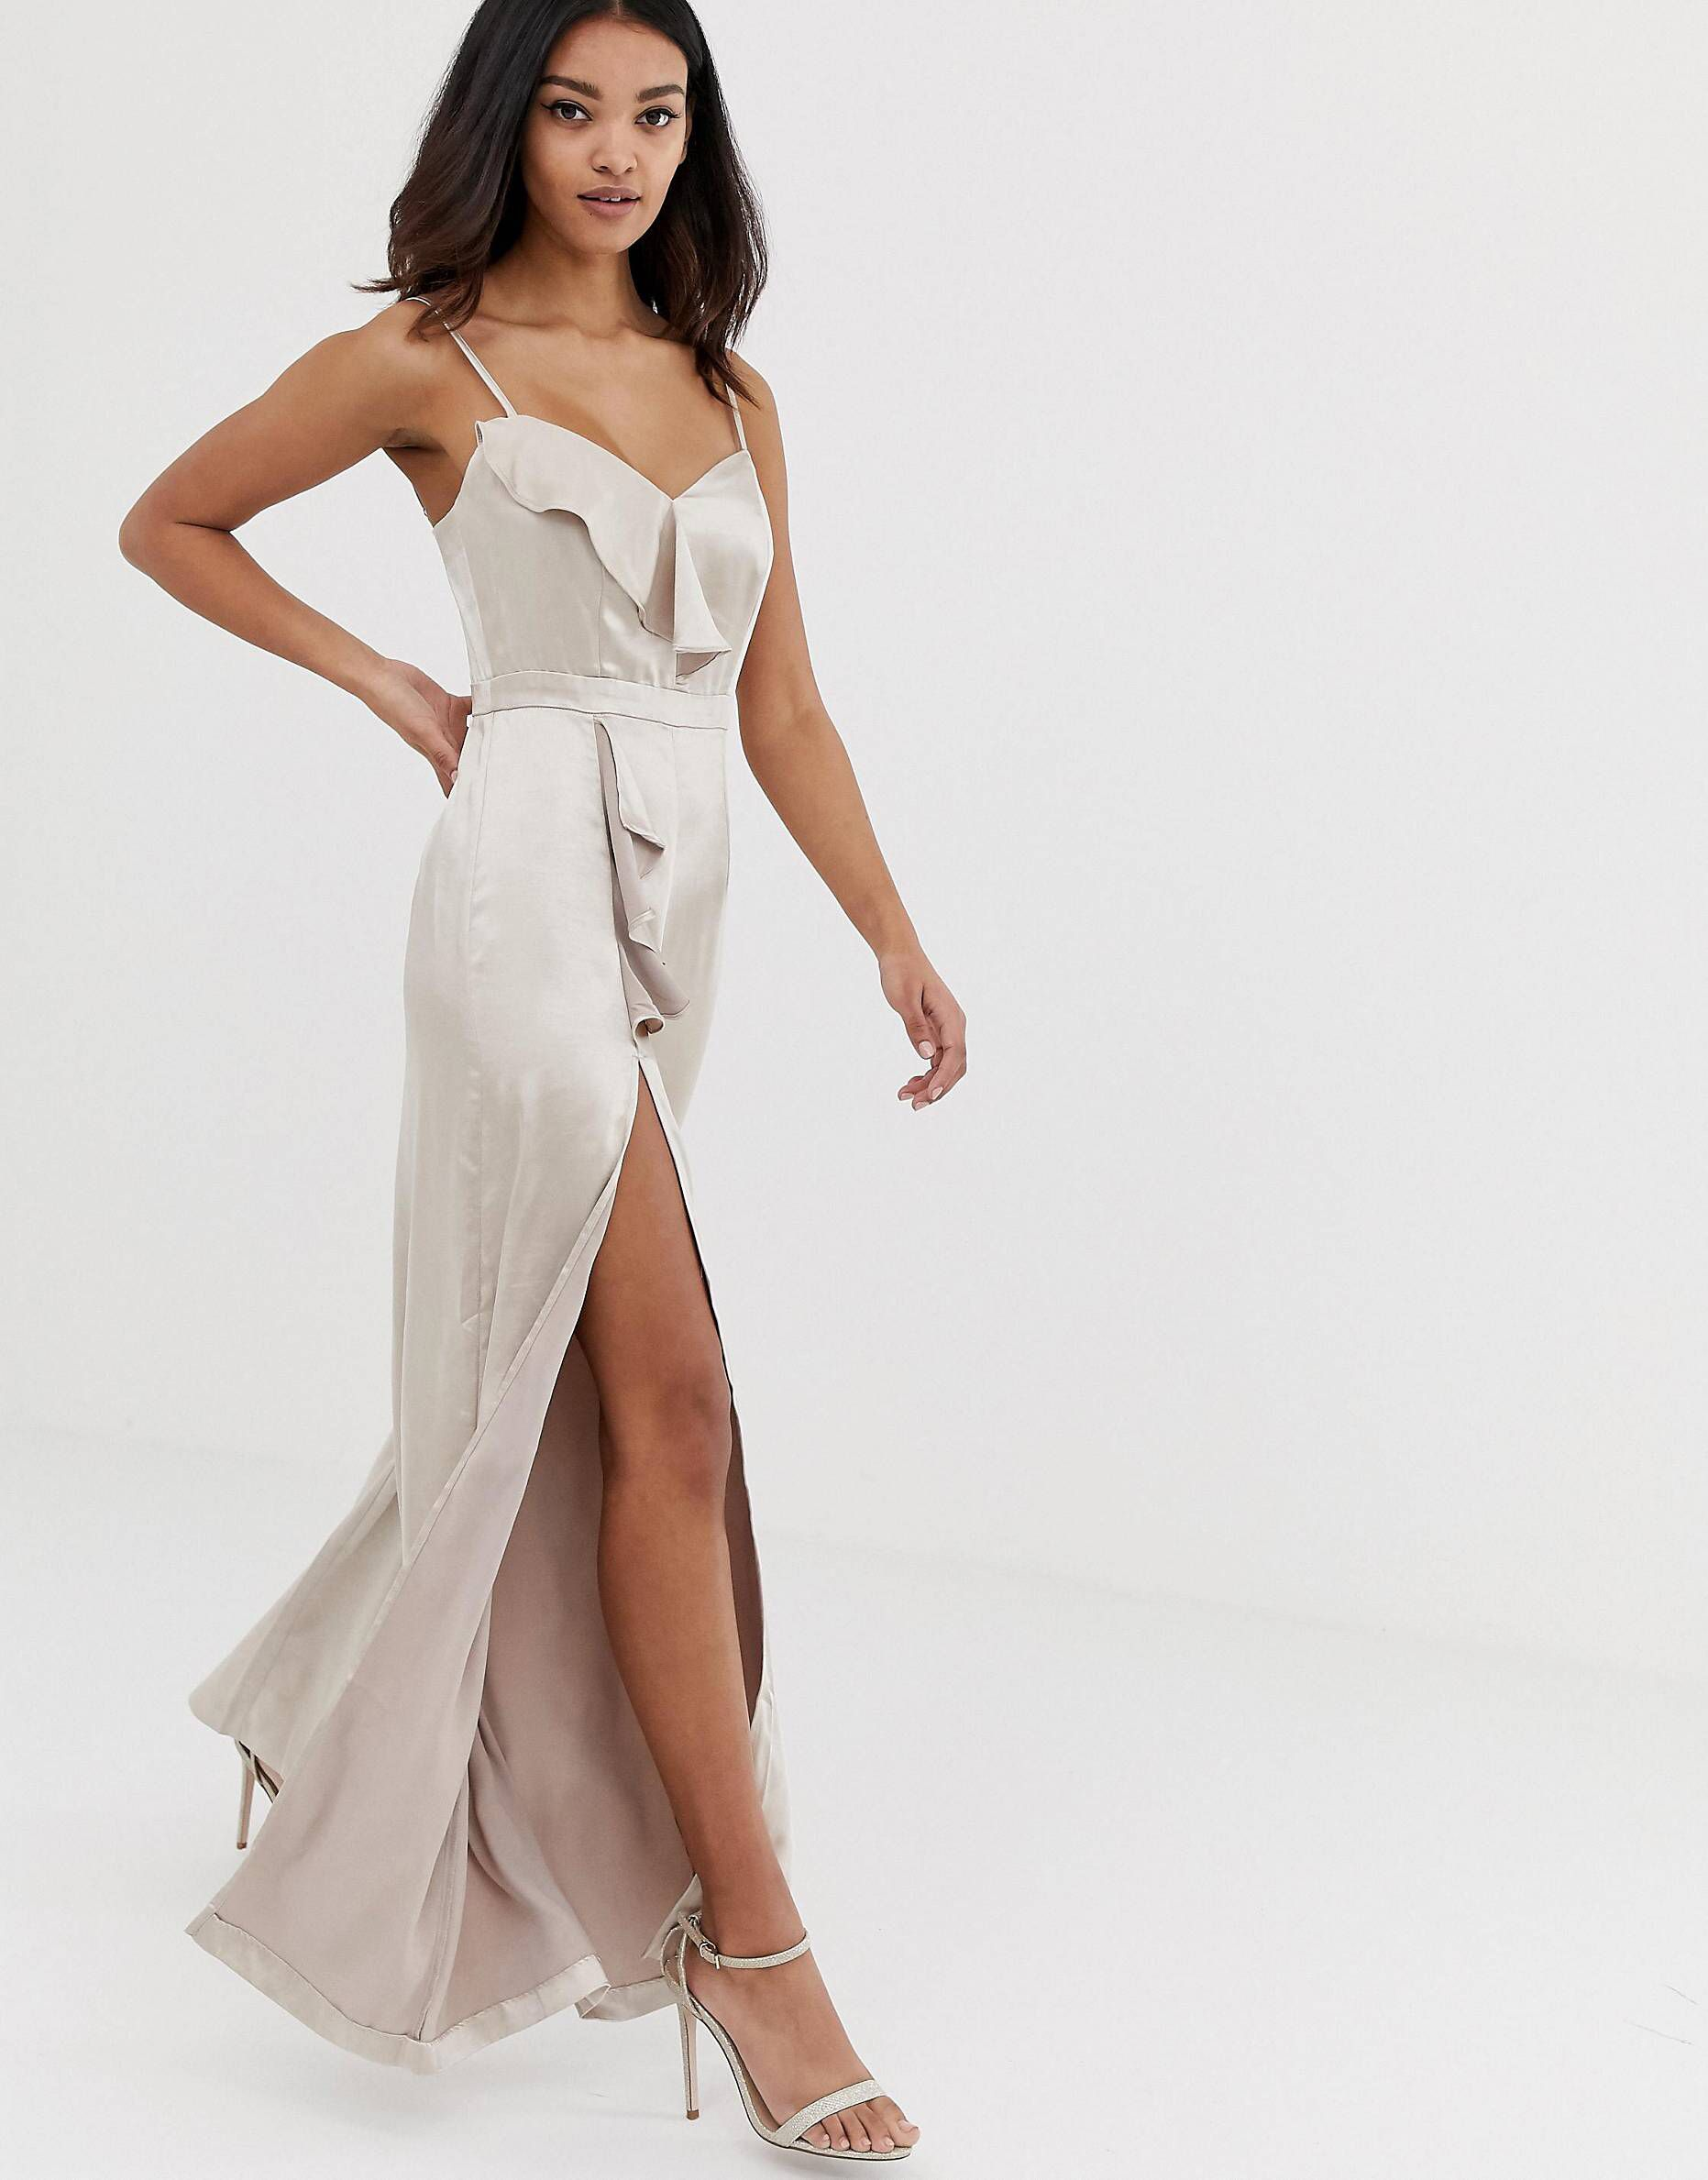 f26319c47 What's Trending In Fashion, Satin Jumpsuit, Split Legs, My Shopping List,  Nordstrom